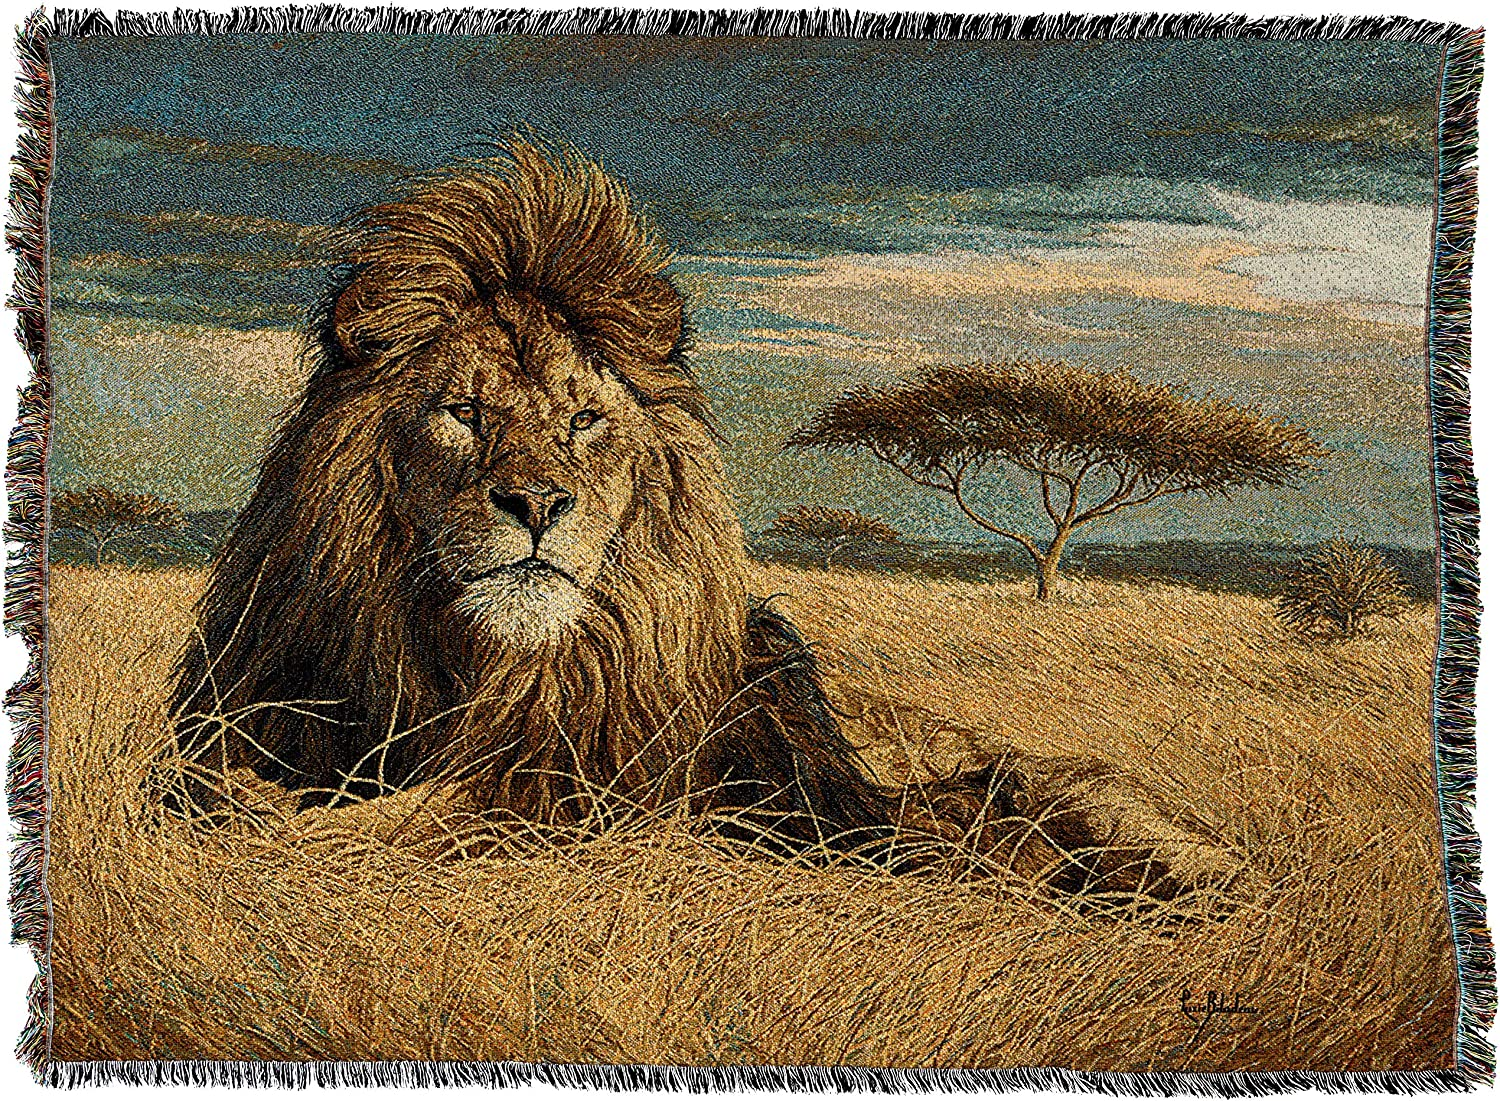 Pure Country Weavers   King of The Pride Lion Africa Acacia Tree Woven Tapestry Throw Blanket with Fringe Cotton USA 72x54